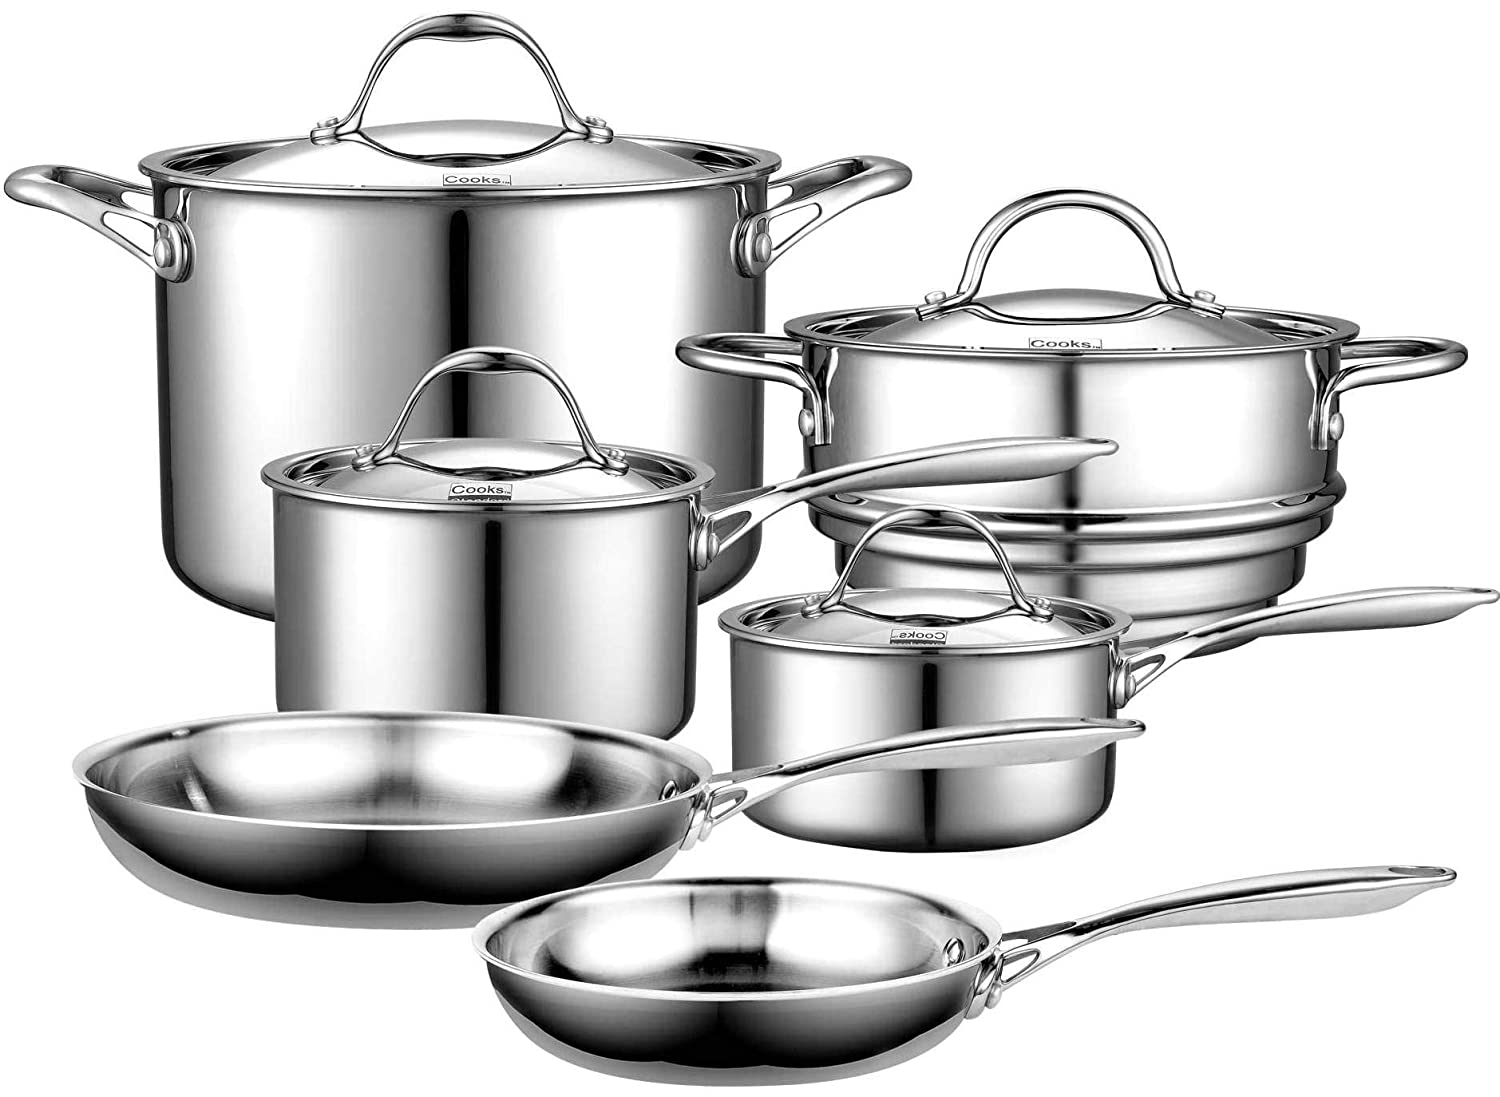 Top 5 Best Stainless Steel Cookware (2020 Reviews & Buying Guide) 5